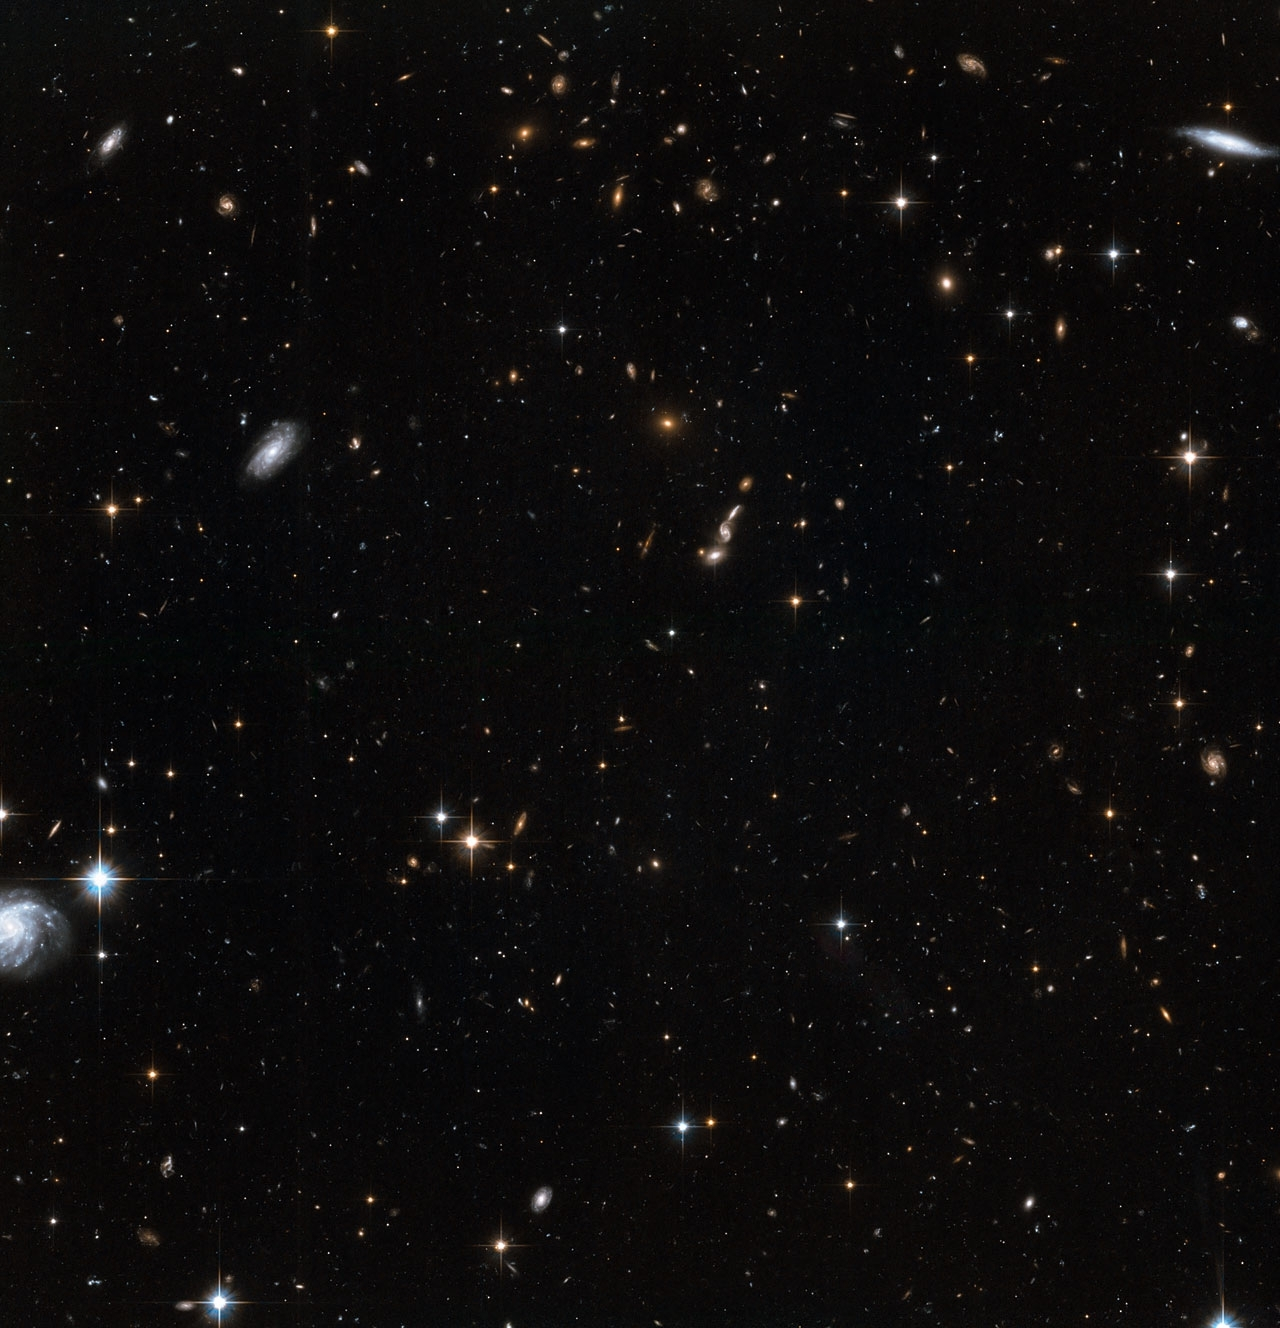 stars in the andromeda galaxy's halo with background galaxies (2